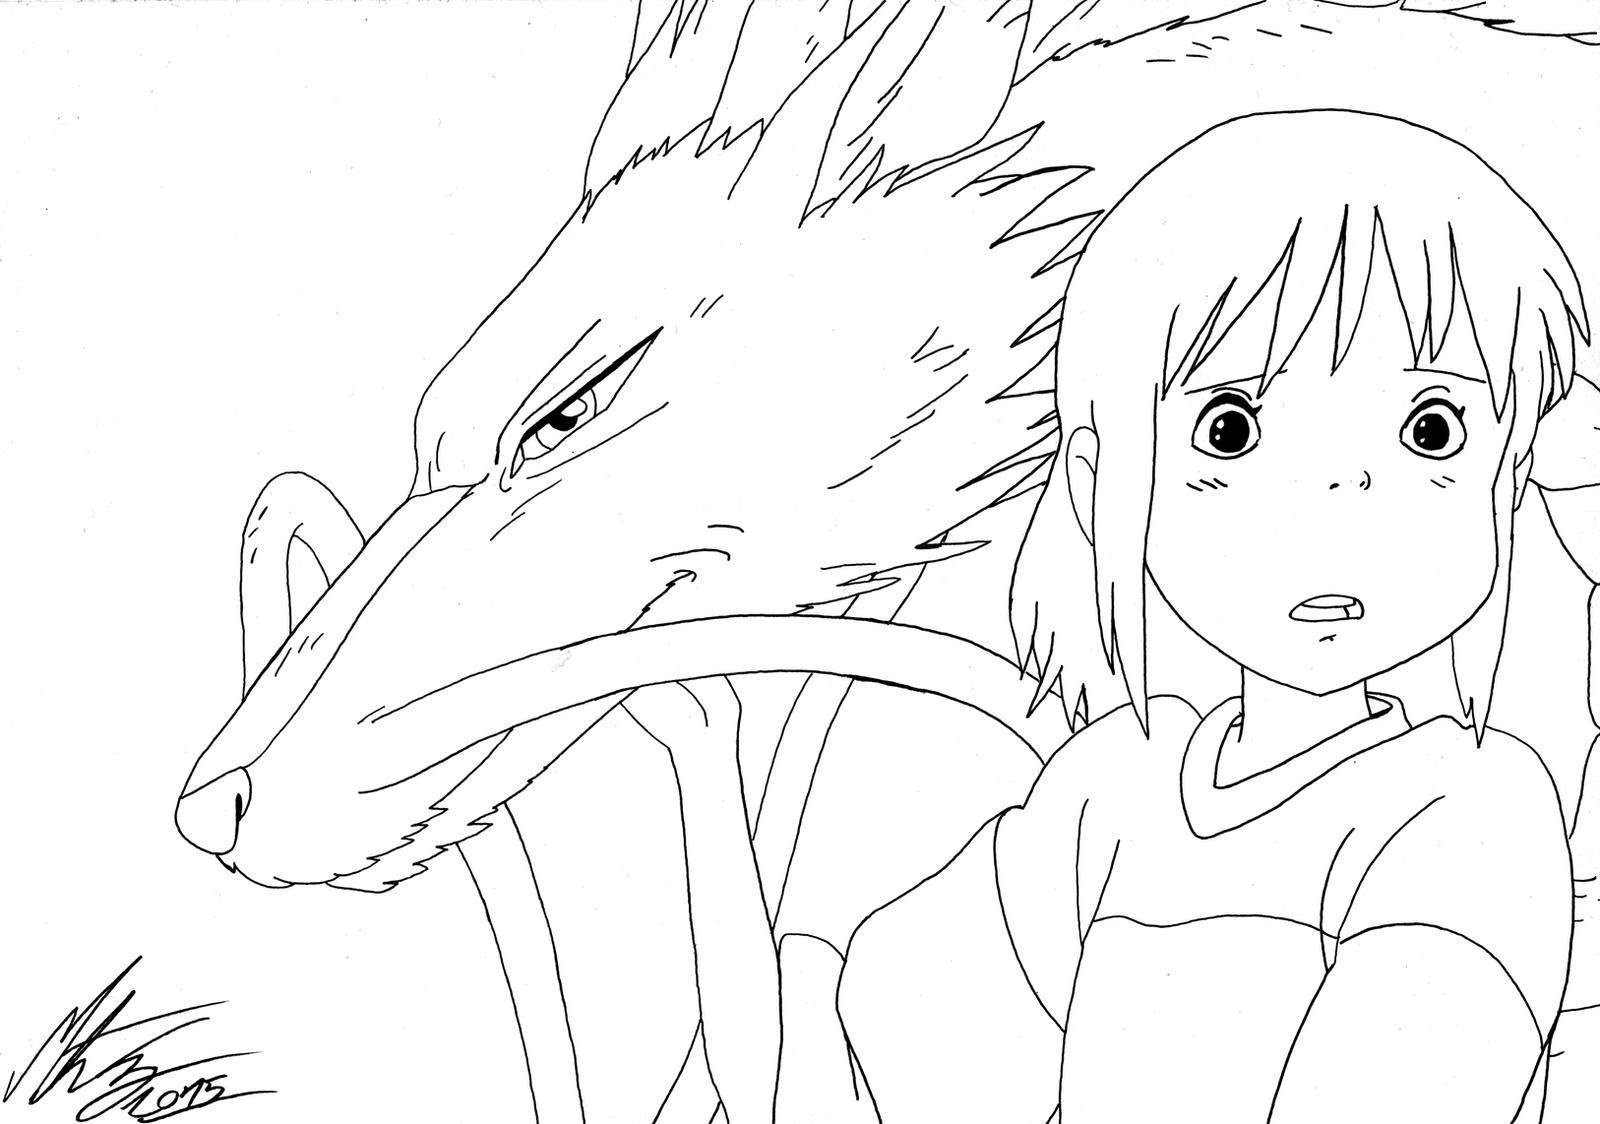 Studio Ghibli Spirited Away By Morteneng21 On Deviantart Spirited Away Coloring Pages